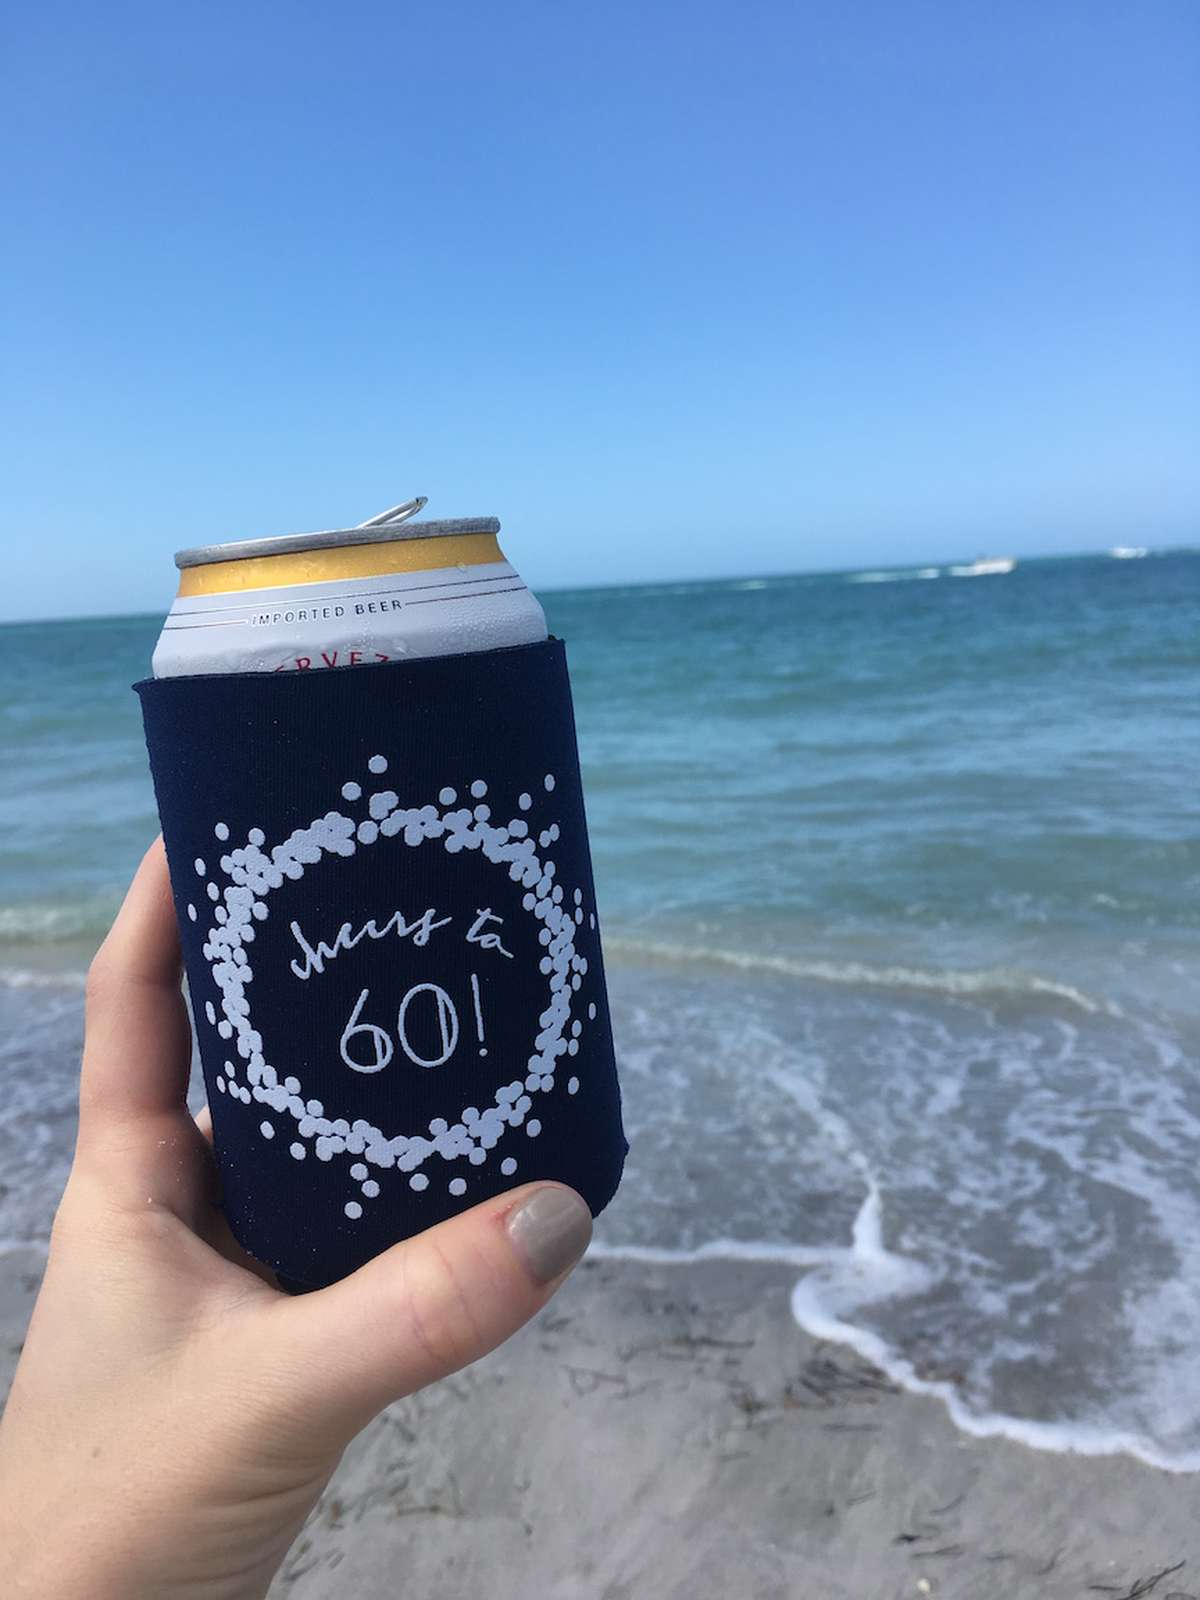 personalized koozie at the beach